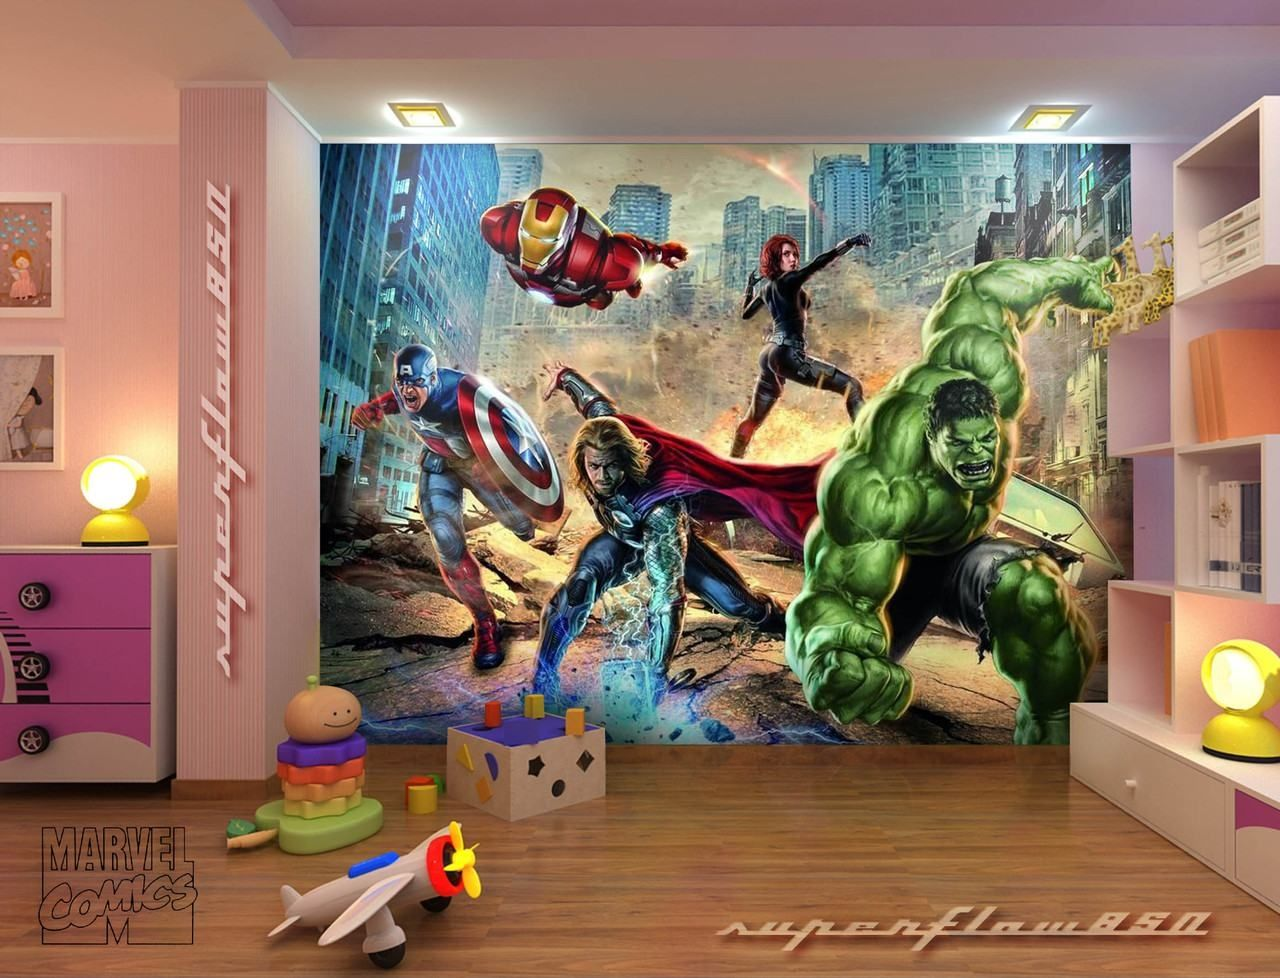 Cartoon Murals On The Wall | http://ultimaterpmod.us/ | Pinterest ...